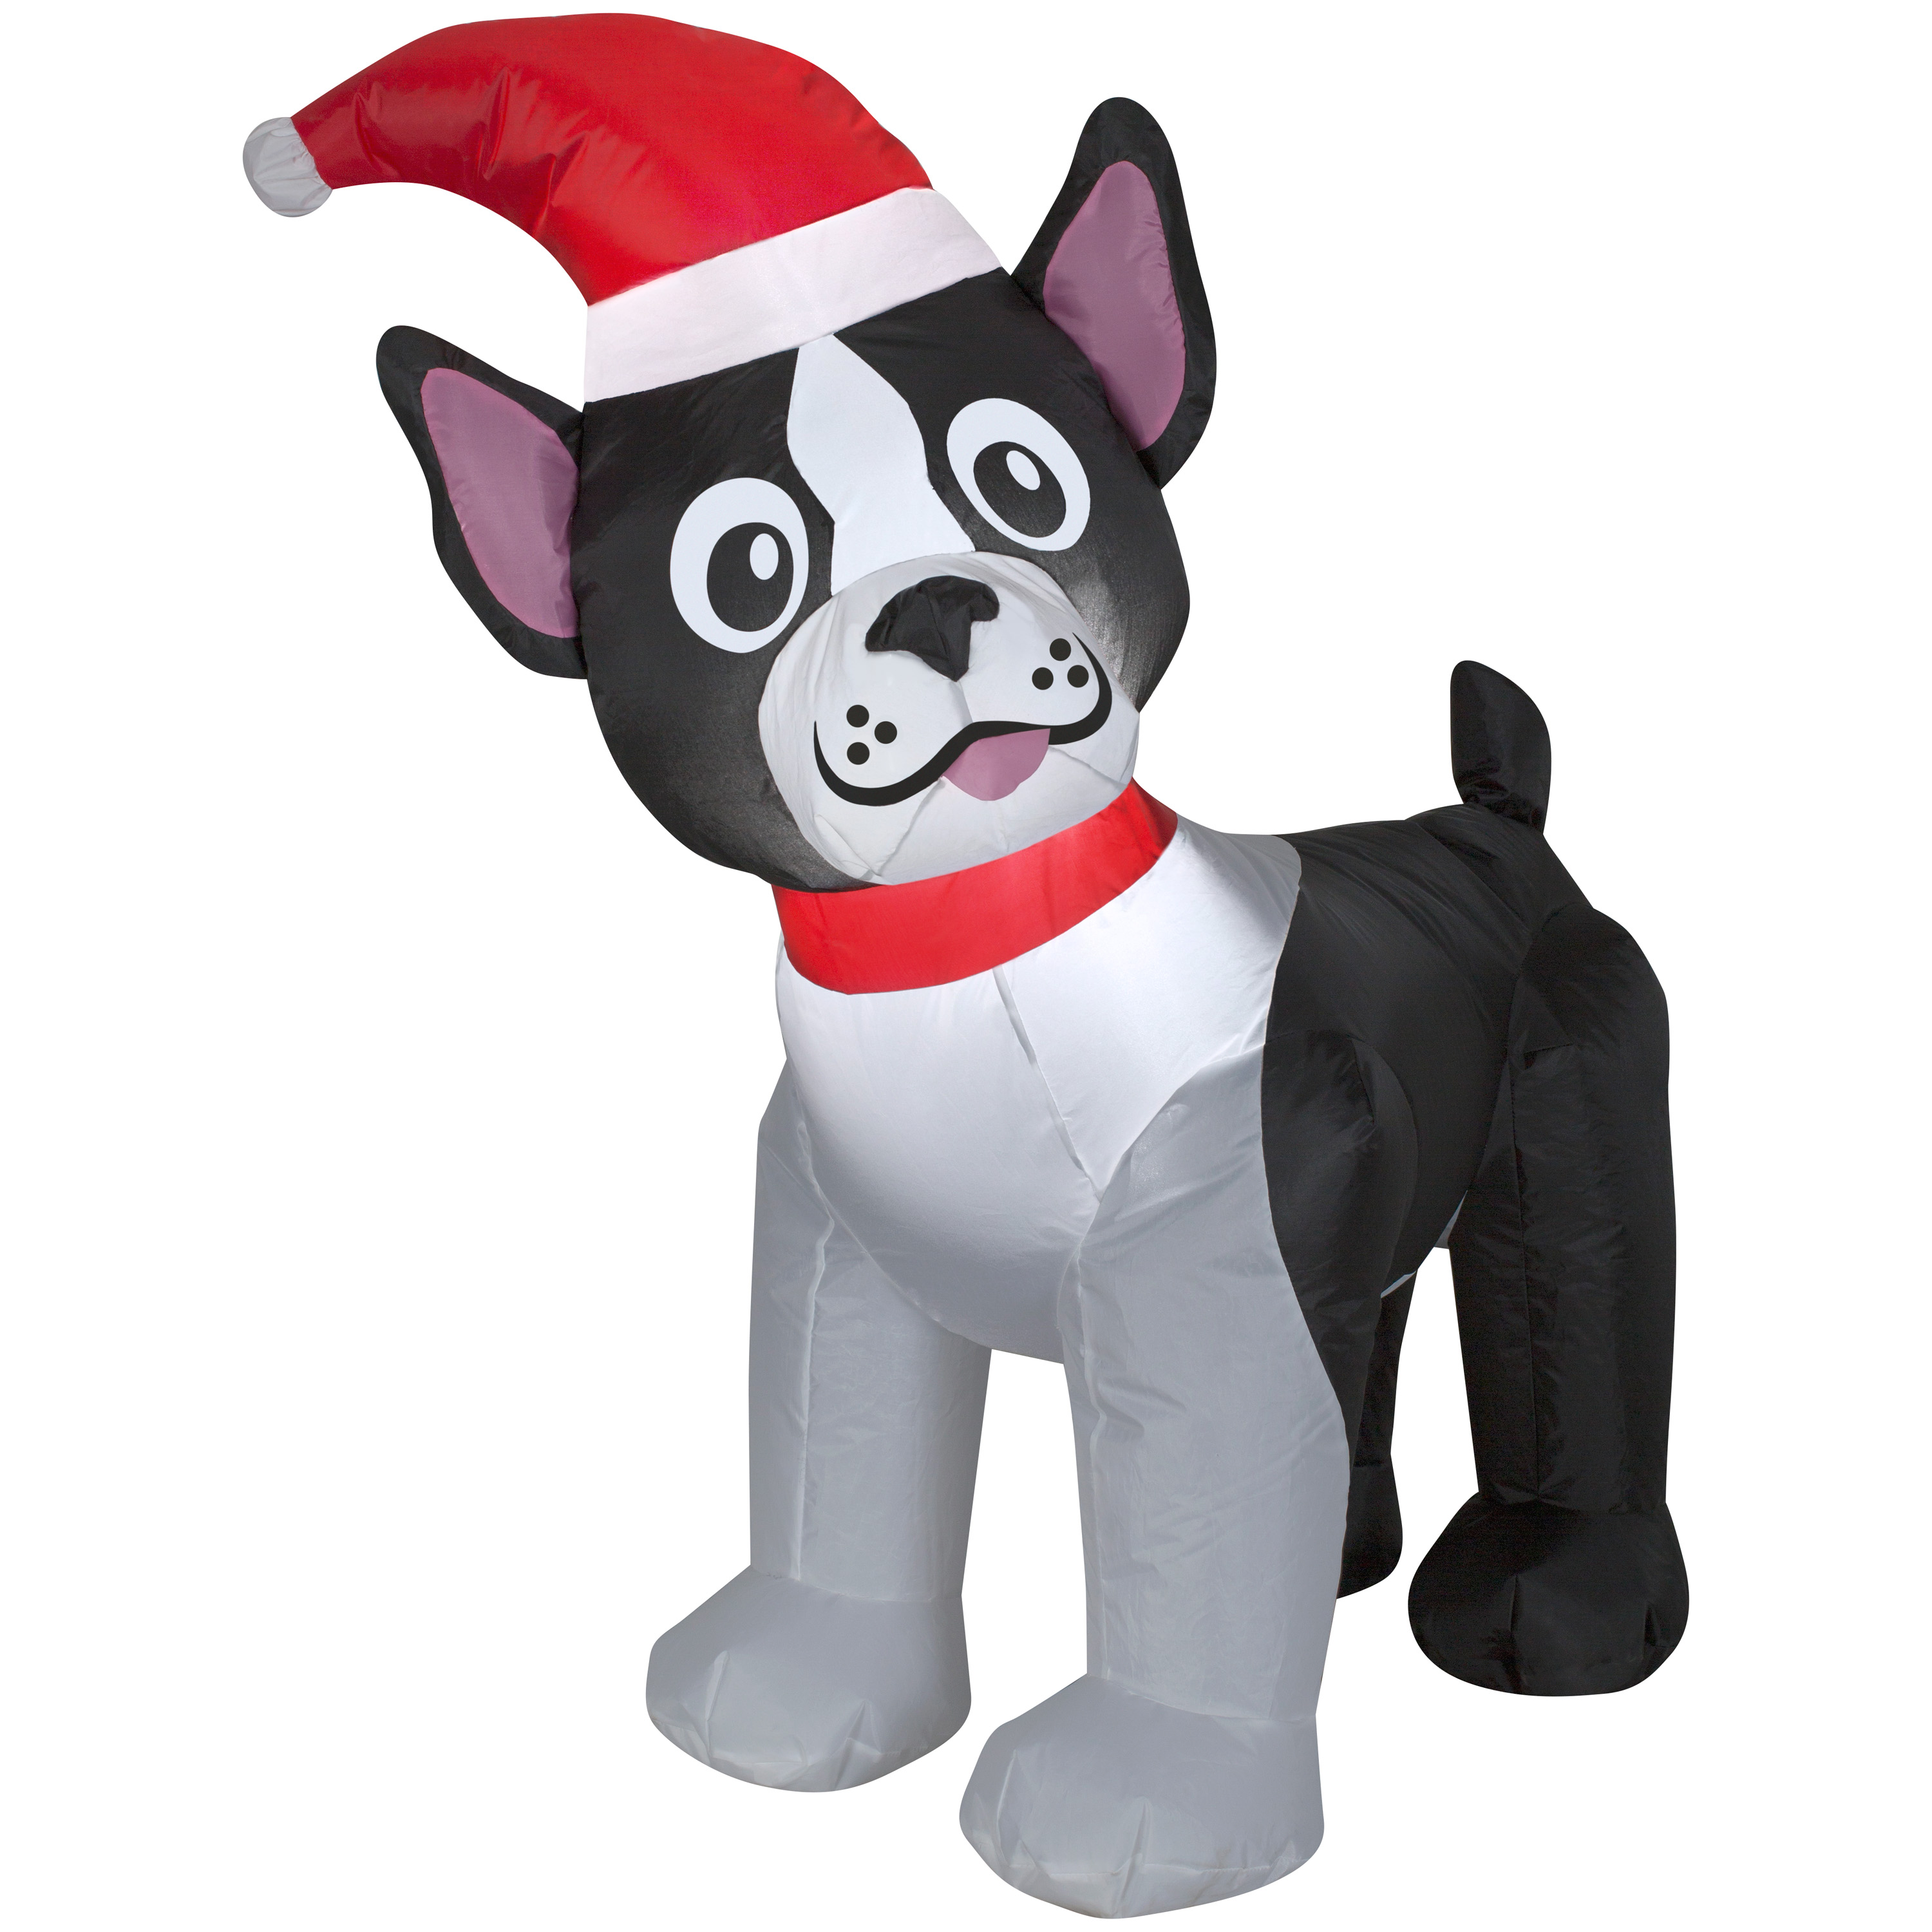 Airblown Inflatable Boston Terrier 3.5ft tall by Gemmy Industries